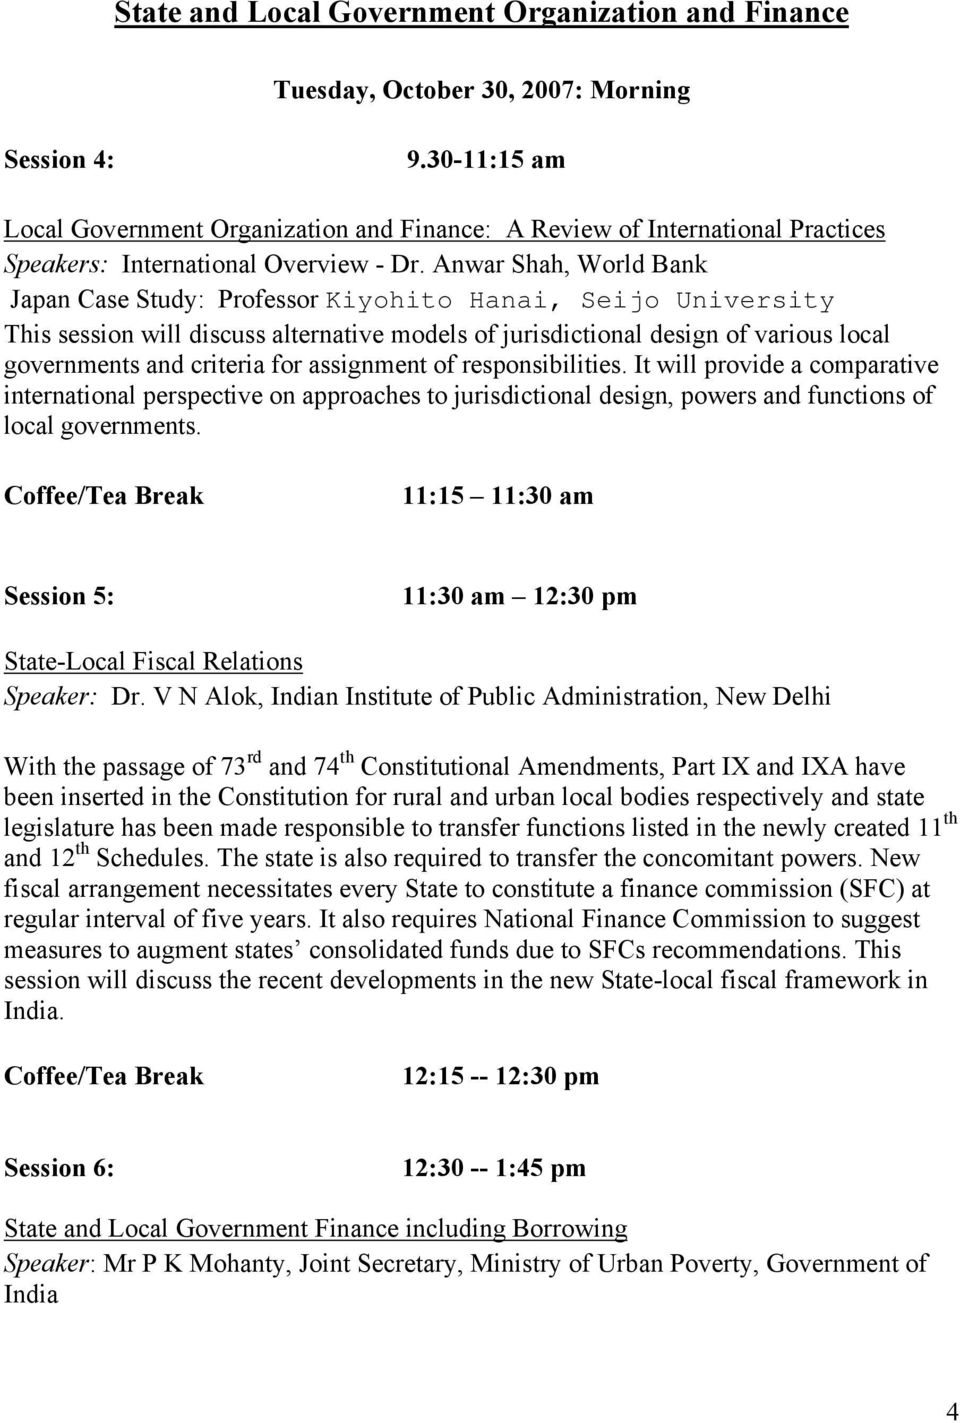 Anwar Shah, World Bank Japan Case Study: Professor Kiyohito Hanai, Seijo University This session will discuss alternative models of jurisdictional design of various local governments and criteria for